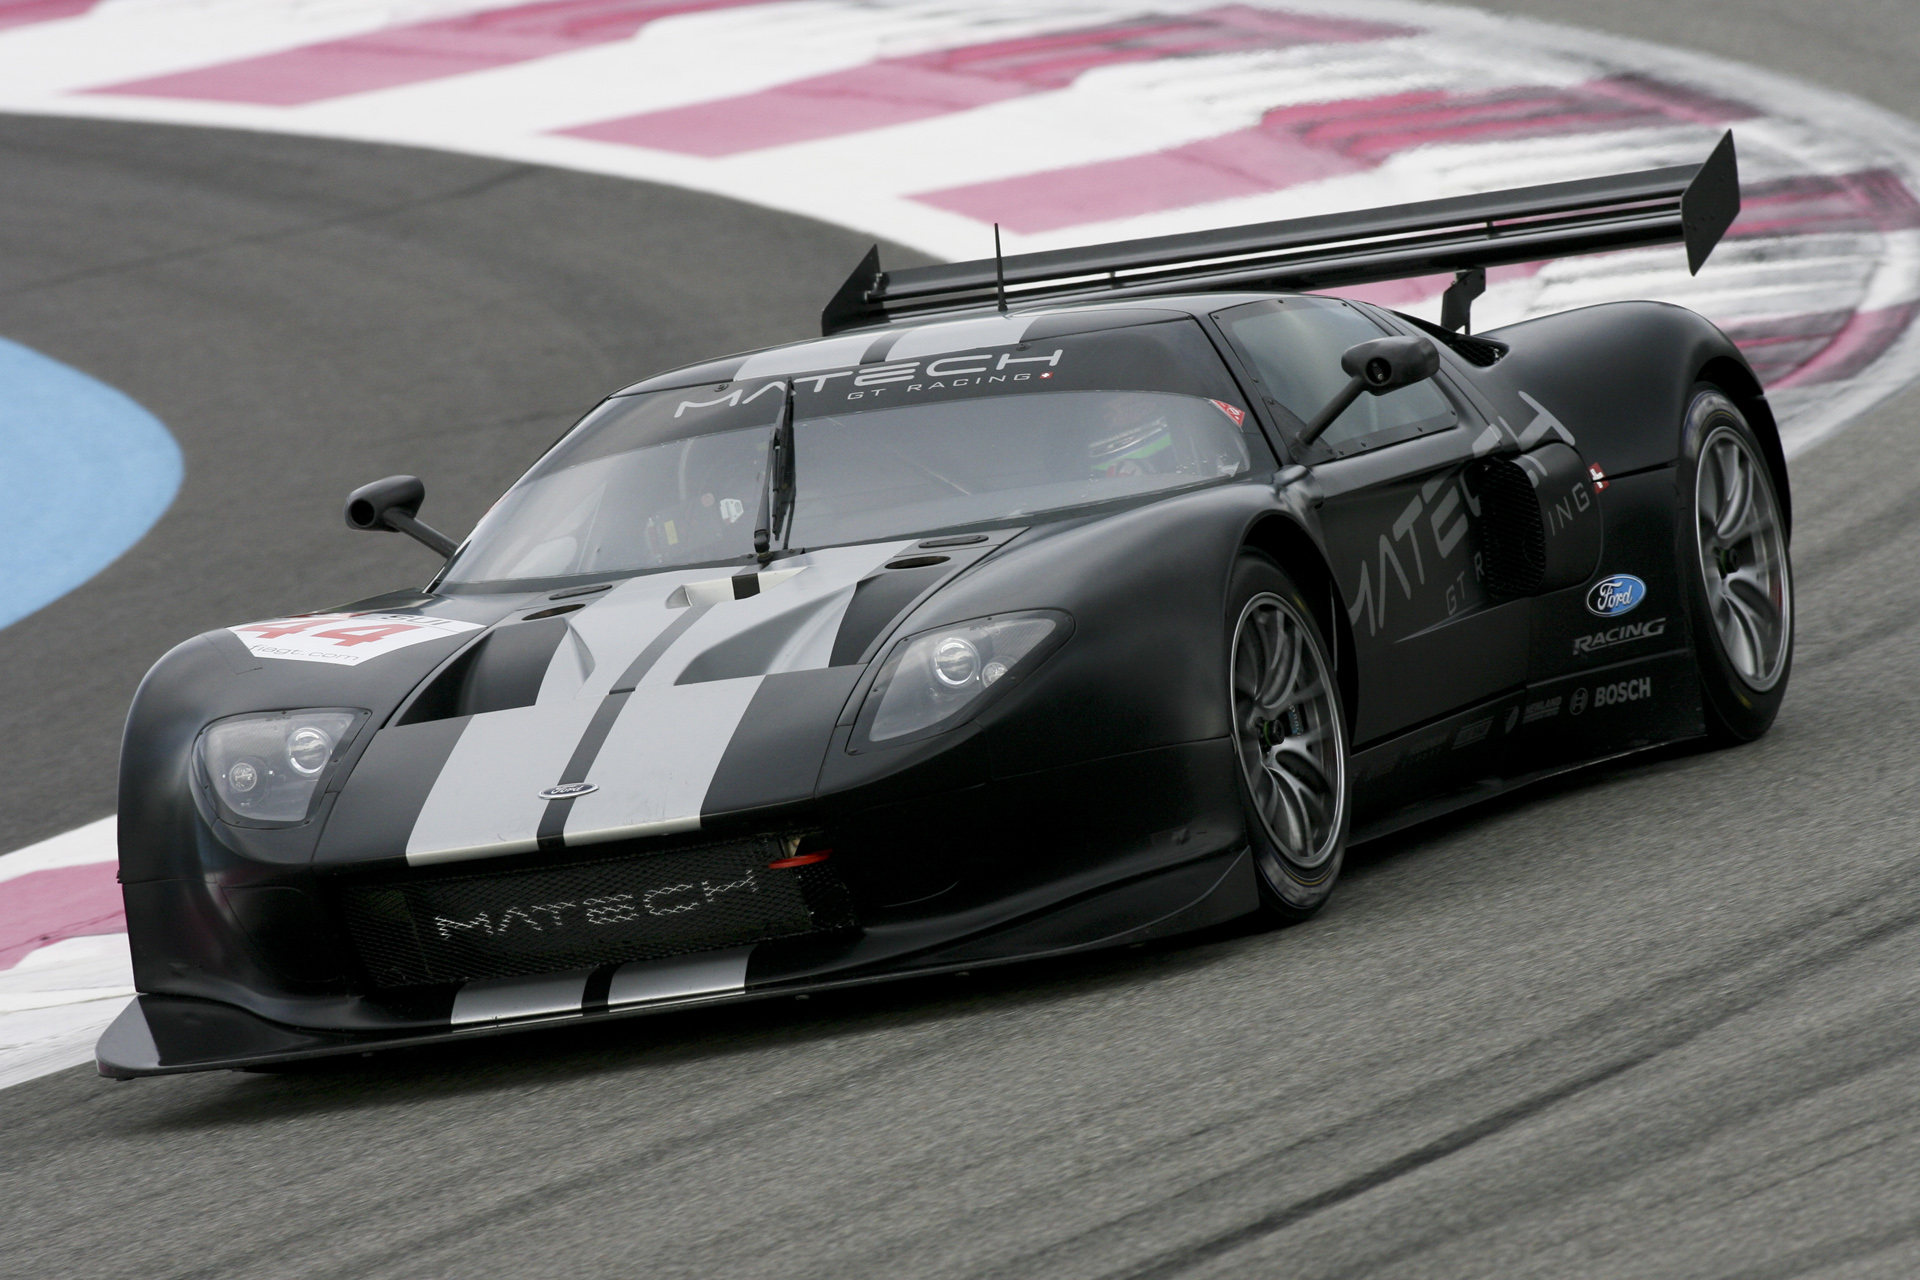 Matech Racing Ford GT1 photo 65358